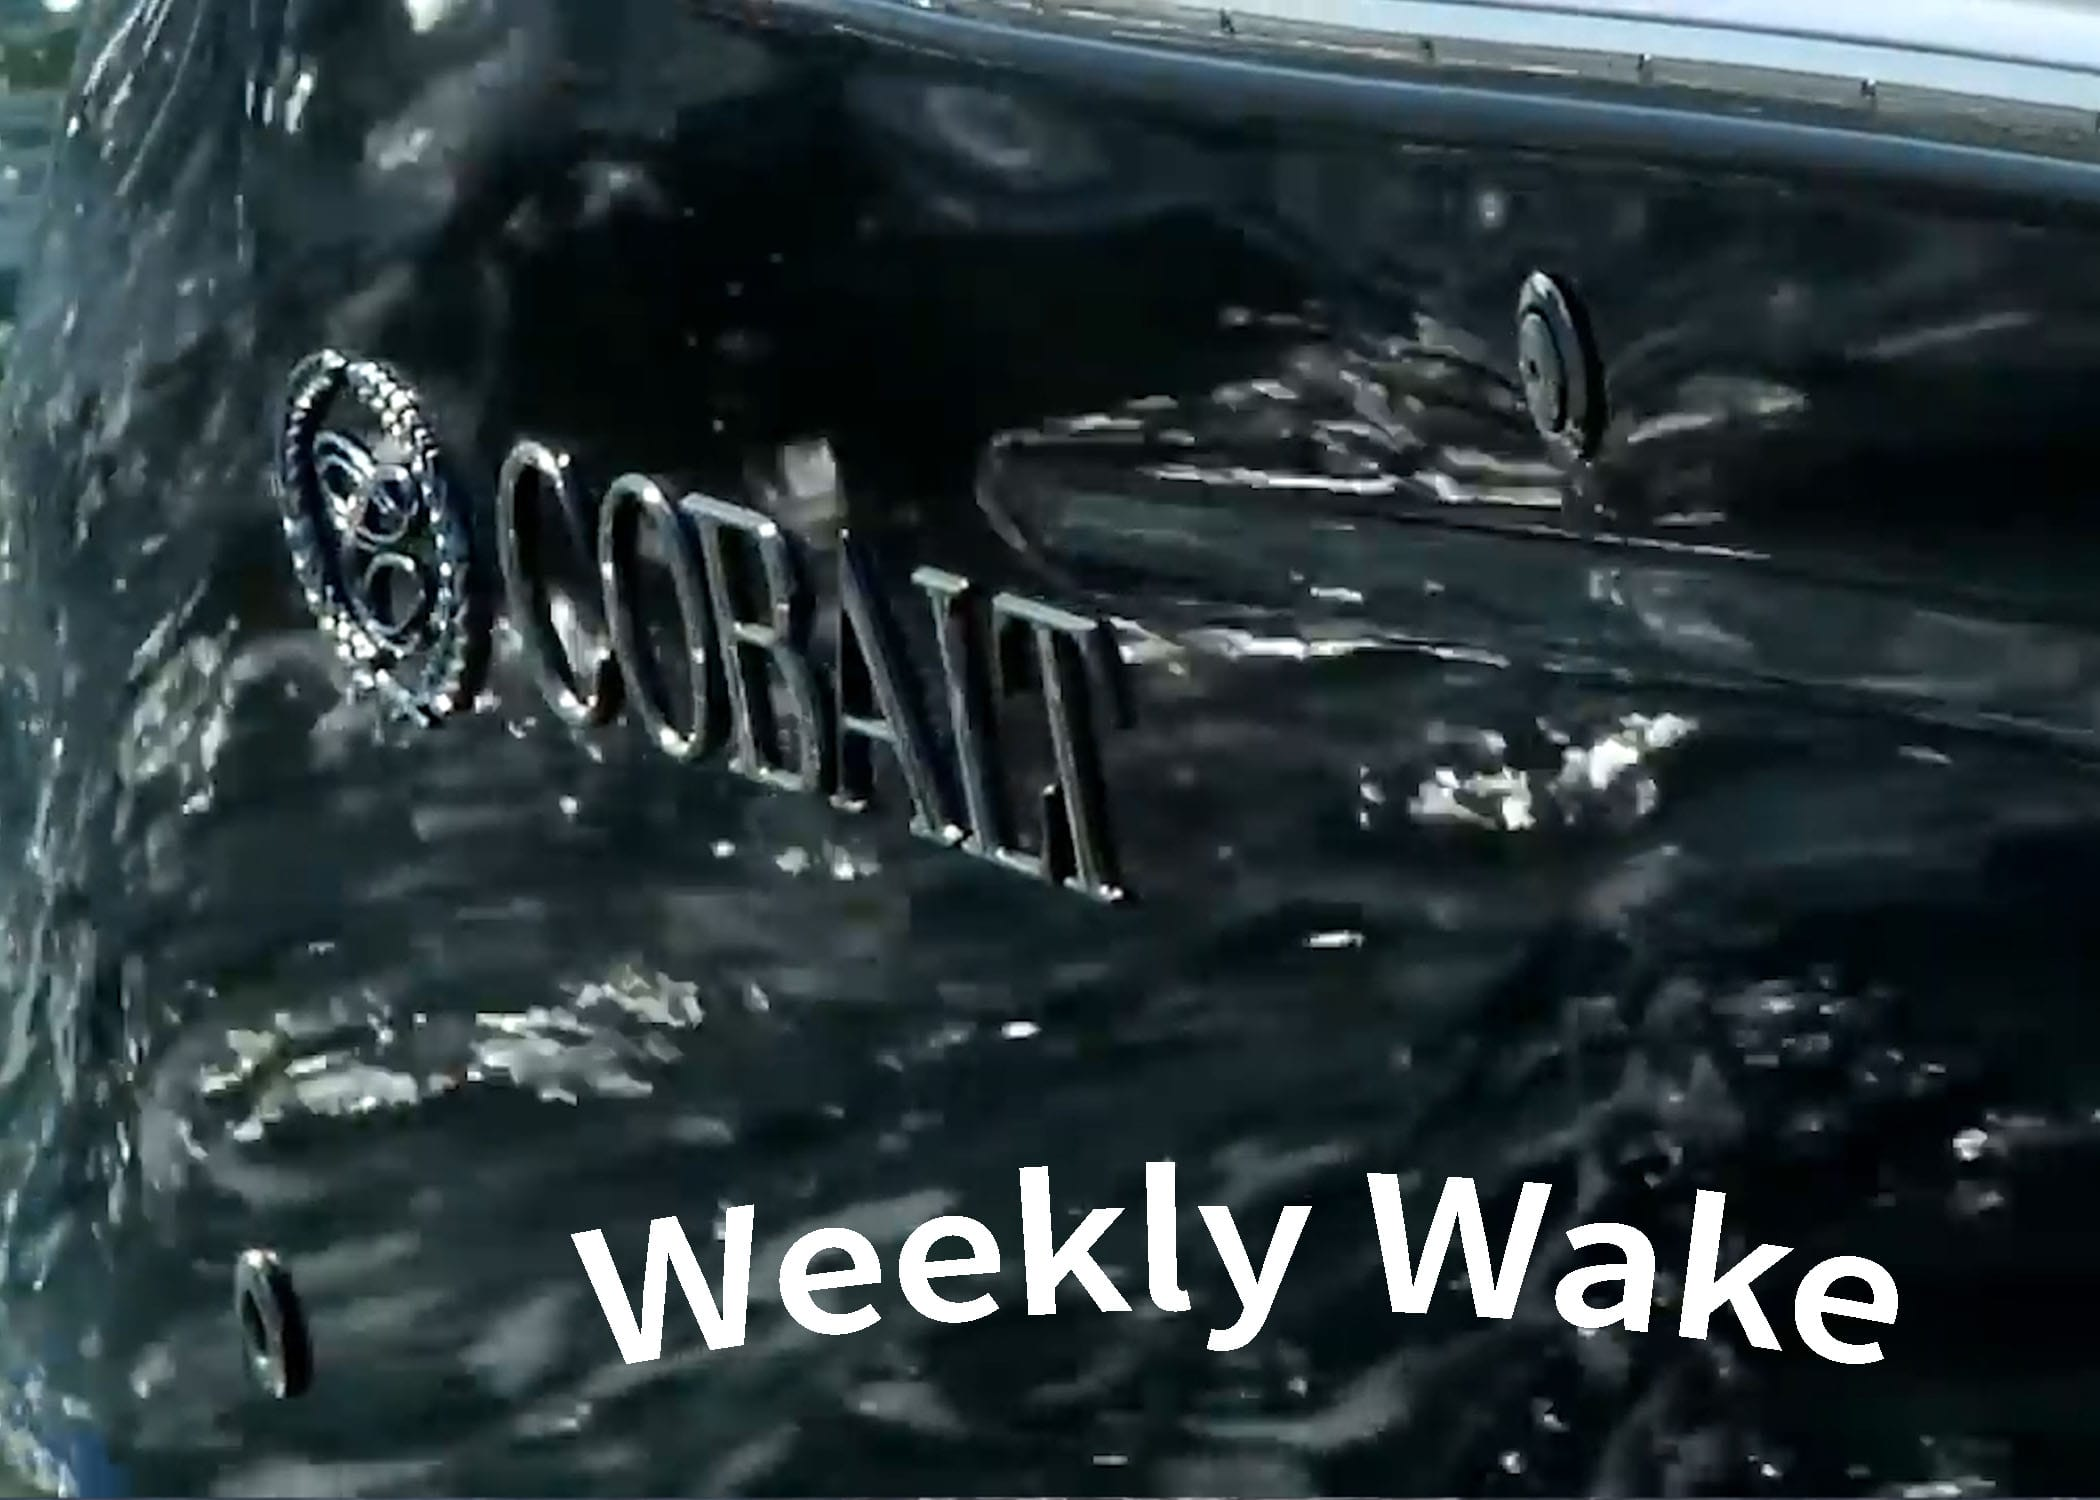 Weekly Wake: 3 points that make Cobalt special